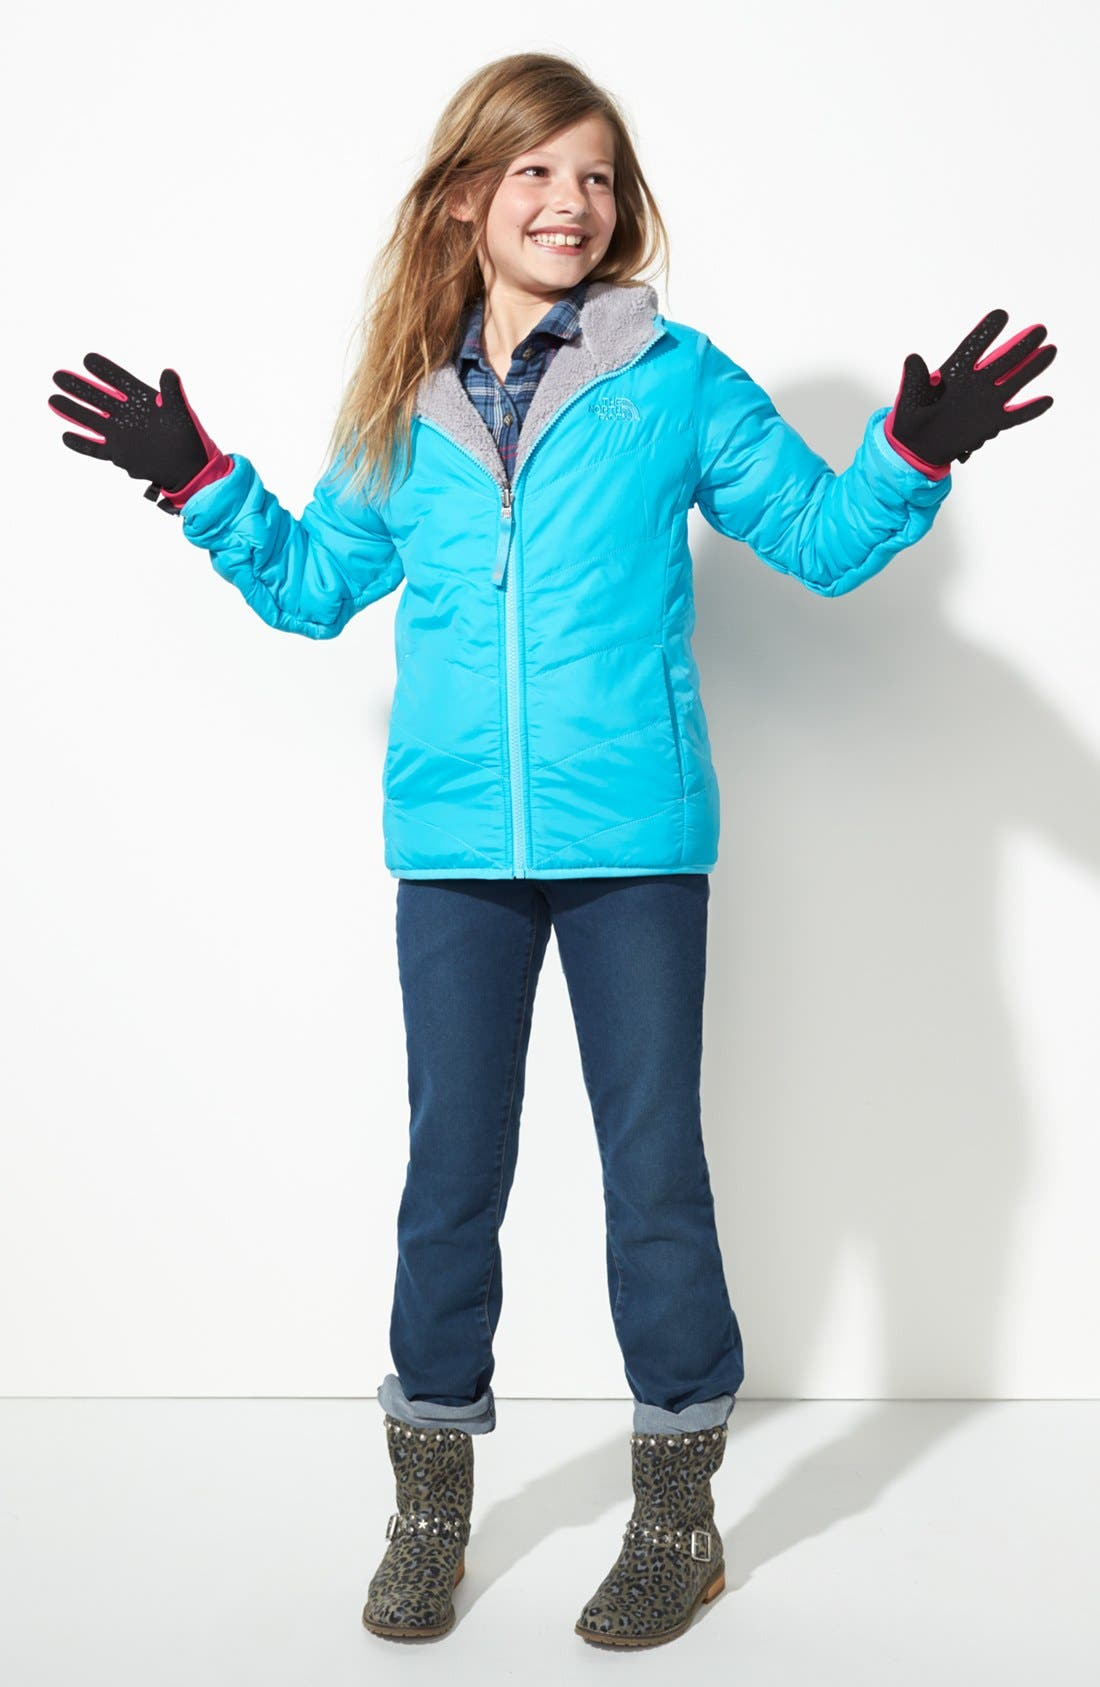 Main Image - The North Face Jacket & Tractr Jeans (Big Girls)